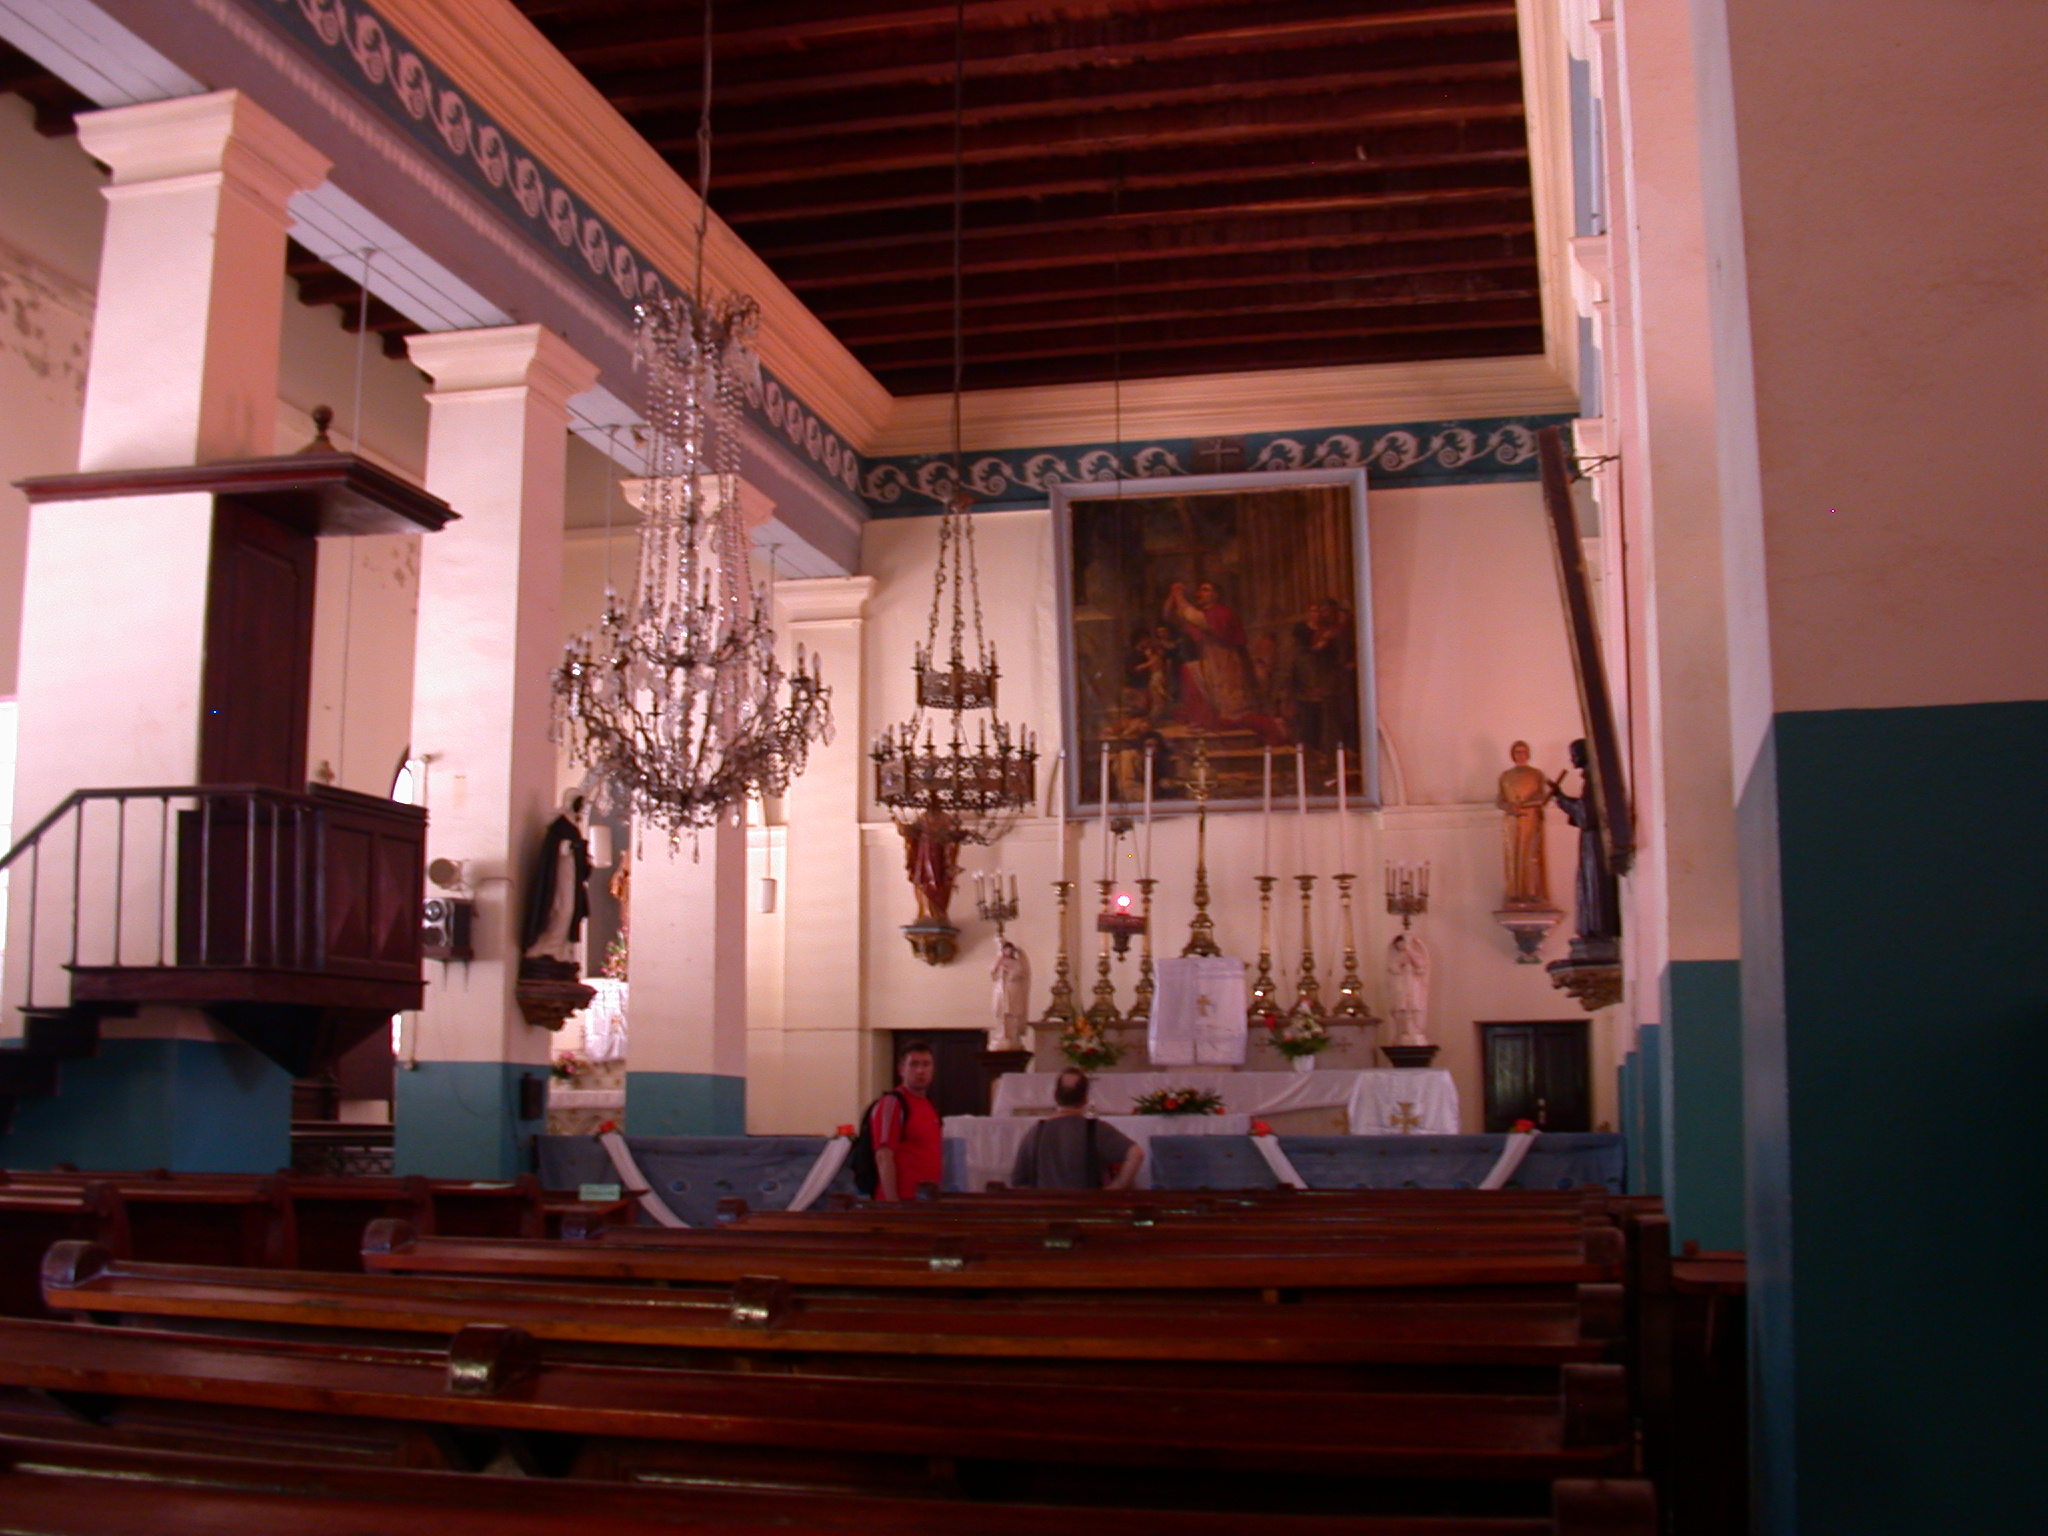 Cathedral on Ile de Goree, Dakar, Senegal